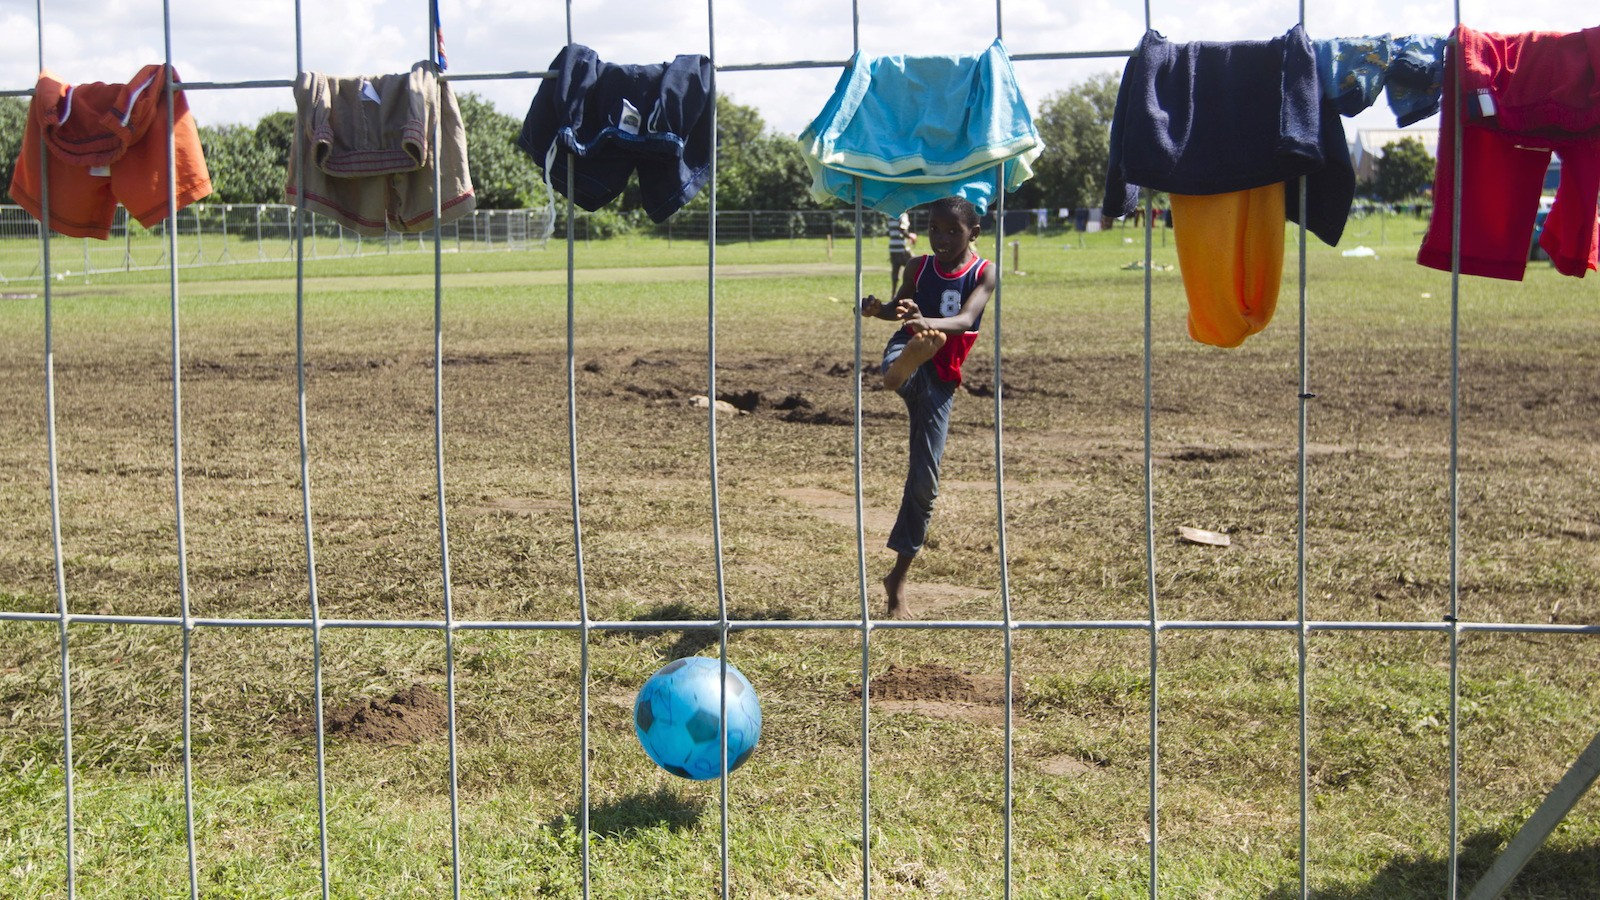 A foreign boy plays soccer at a fenced off sports field in Isipingo, south of Durban, April 9, 2015. Several hundred foreign nationals have sought refuge in the tents after xenophobia driven violence forced them to flee their homes. REUTERS/Rogan Ward - RTR4WOII